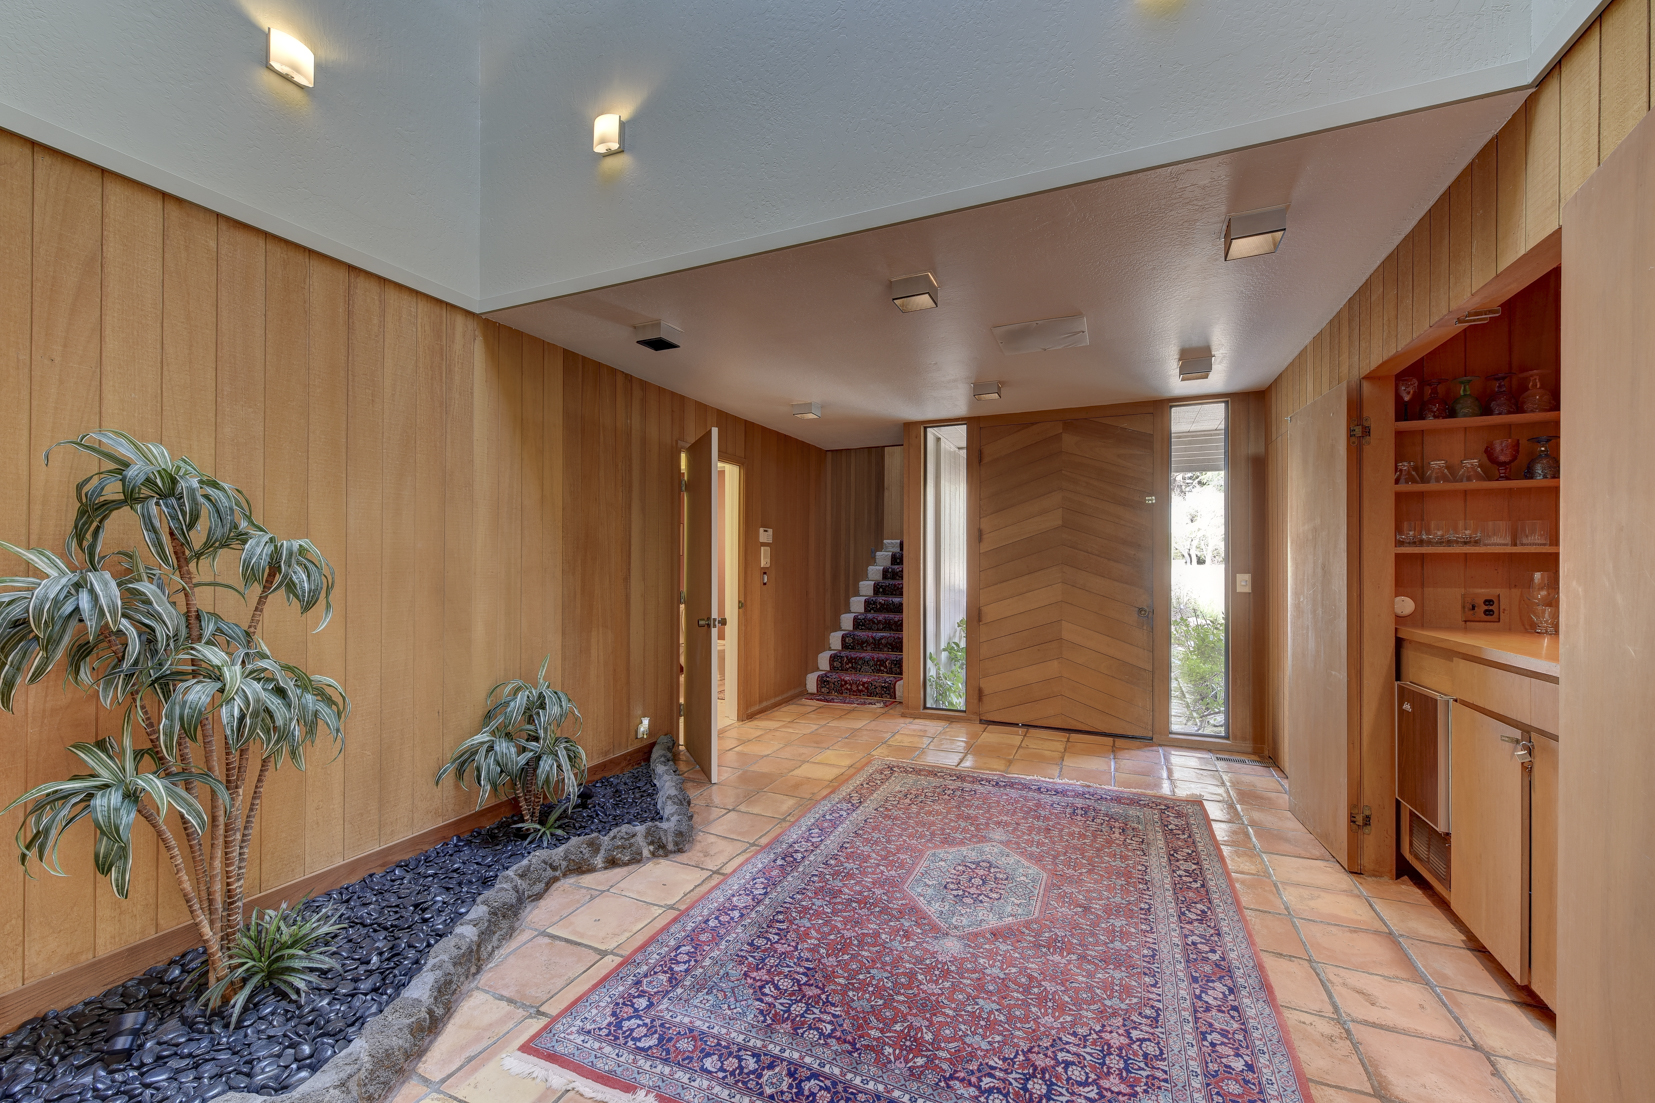 Vintage entry way with wood siding and hidden wetbar in entry way of 3600 Kiekebusch Court